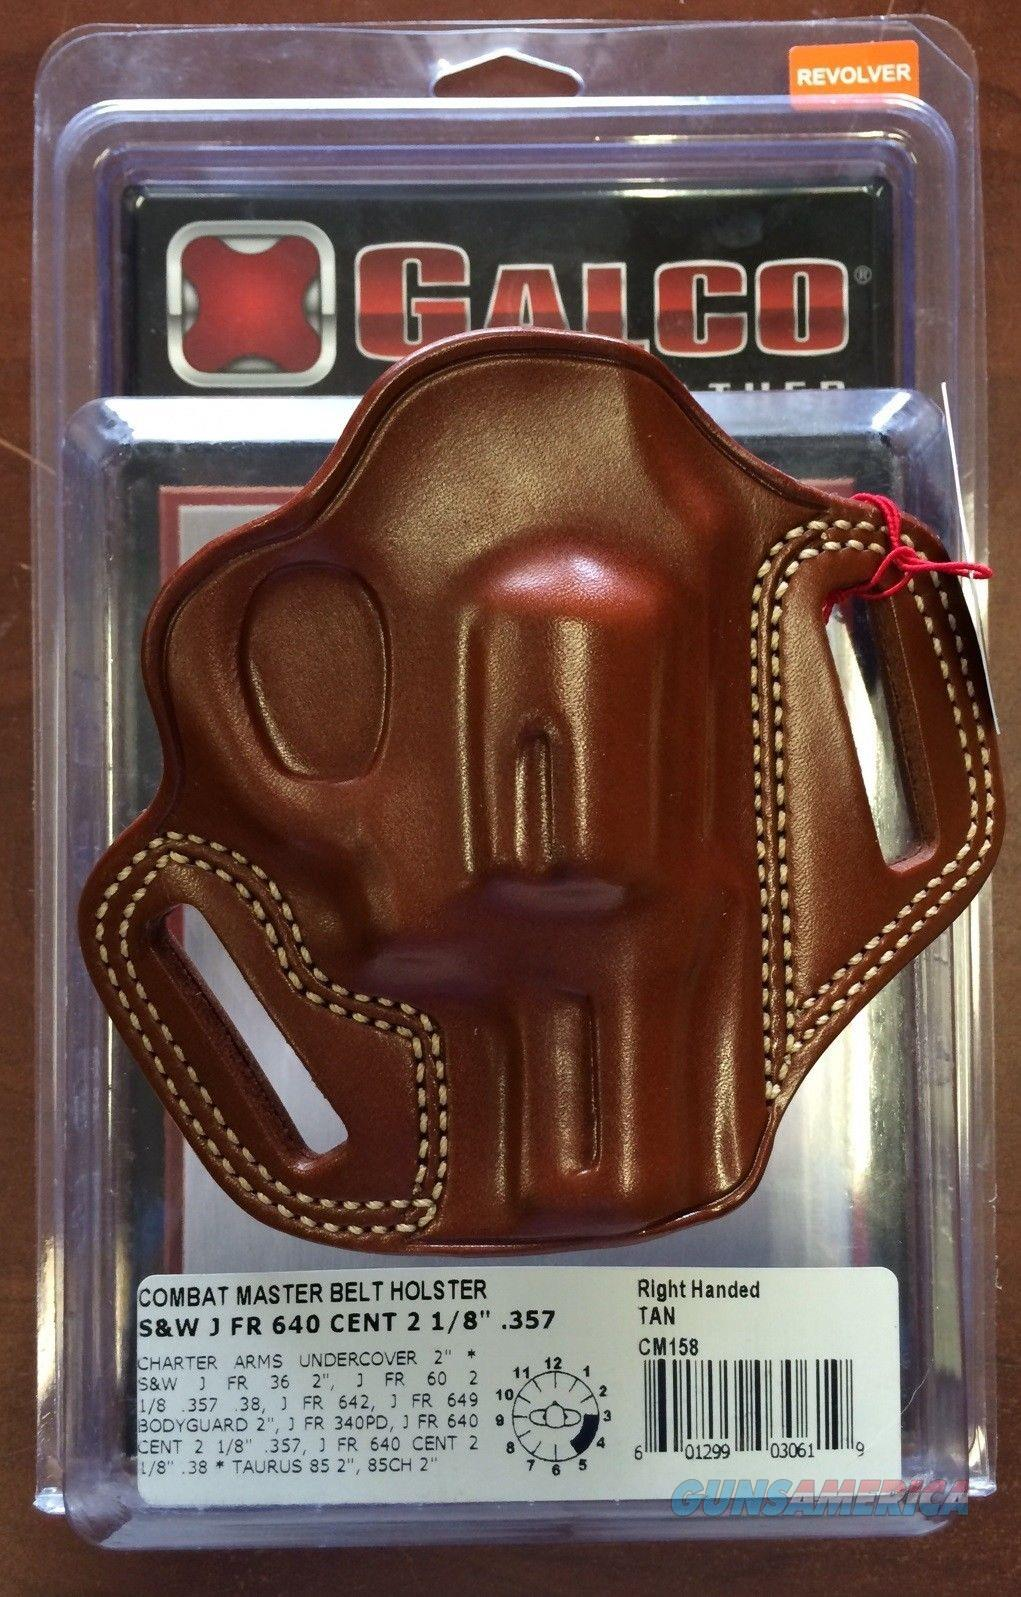 Galco Combat Master Belt Holster  Charter Arms Undercover 2 Inch and Others  Non-Guns > Holsters and Gunleather > Concealed Carry